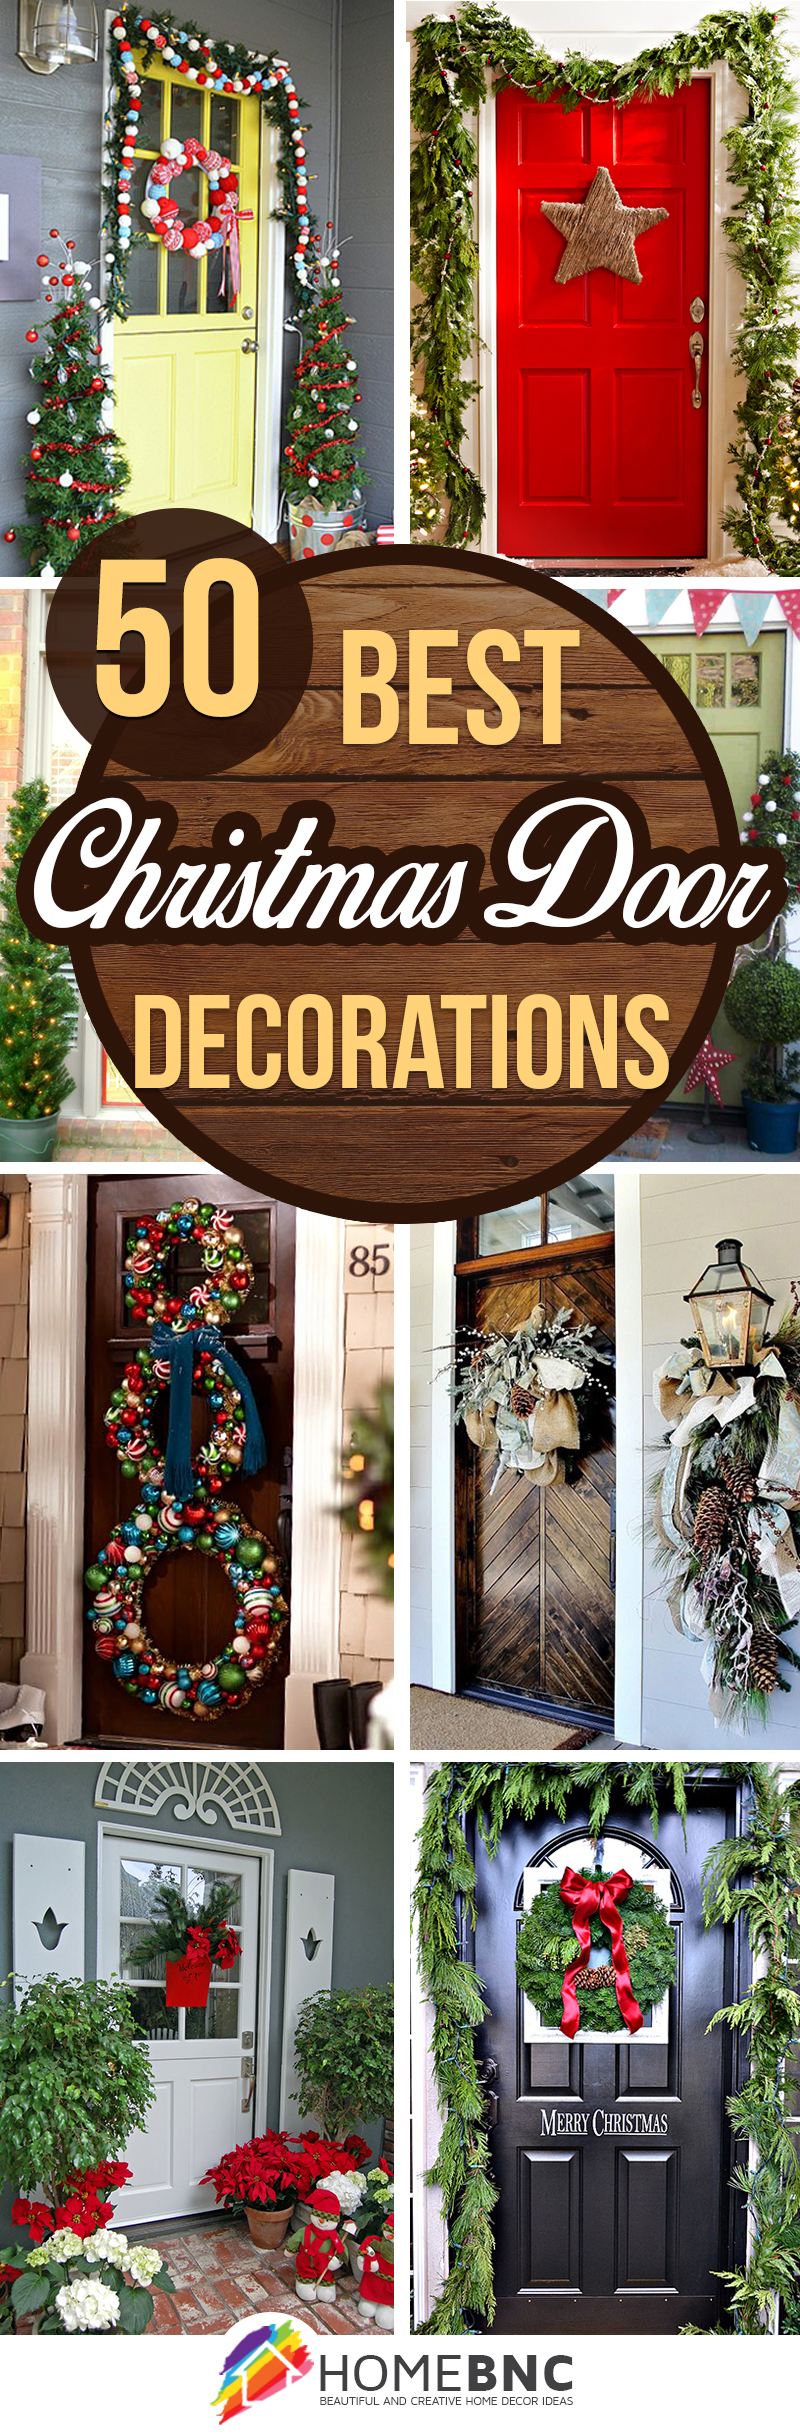 50 best christmas door decorations for 2018 - Best Christmas Door Decorations